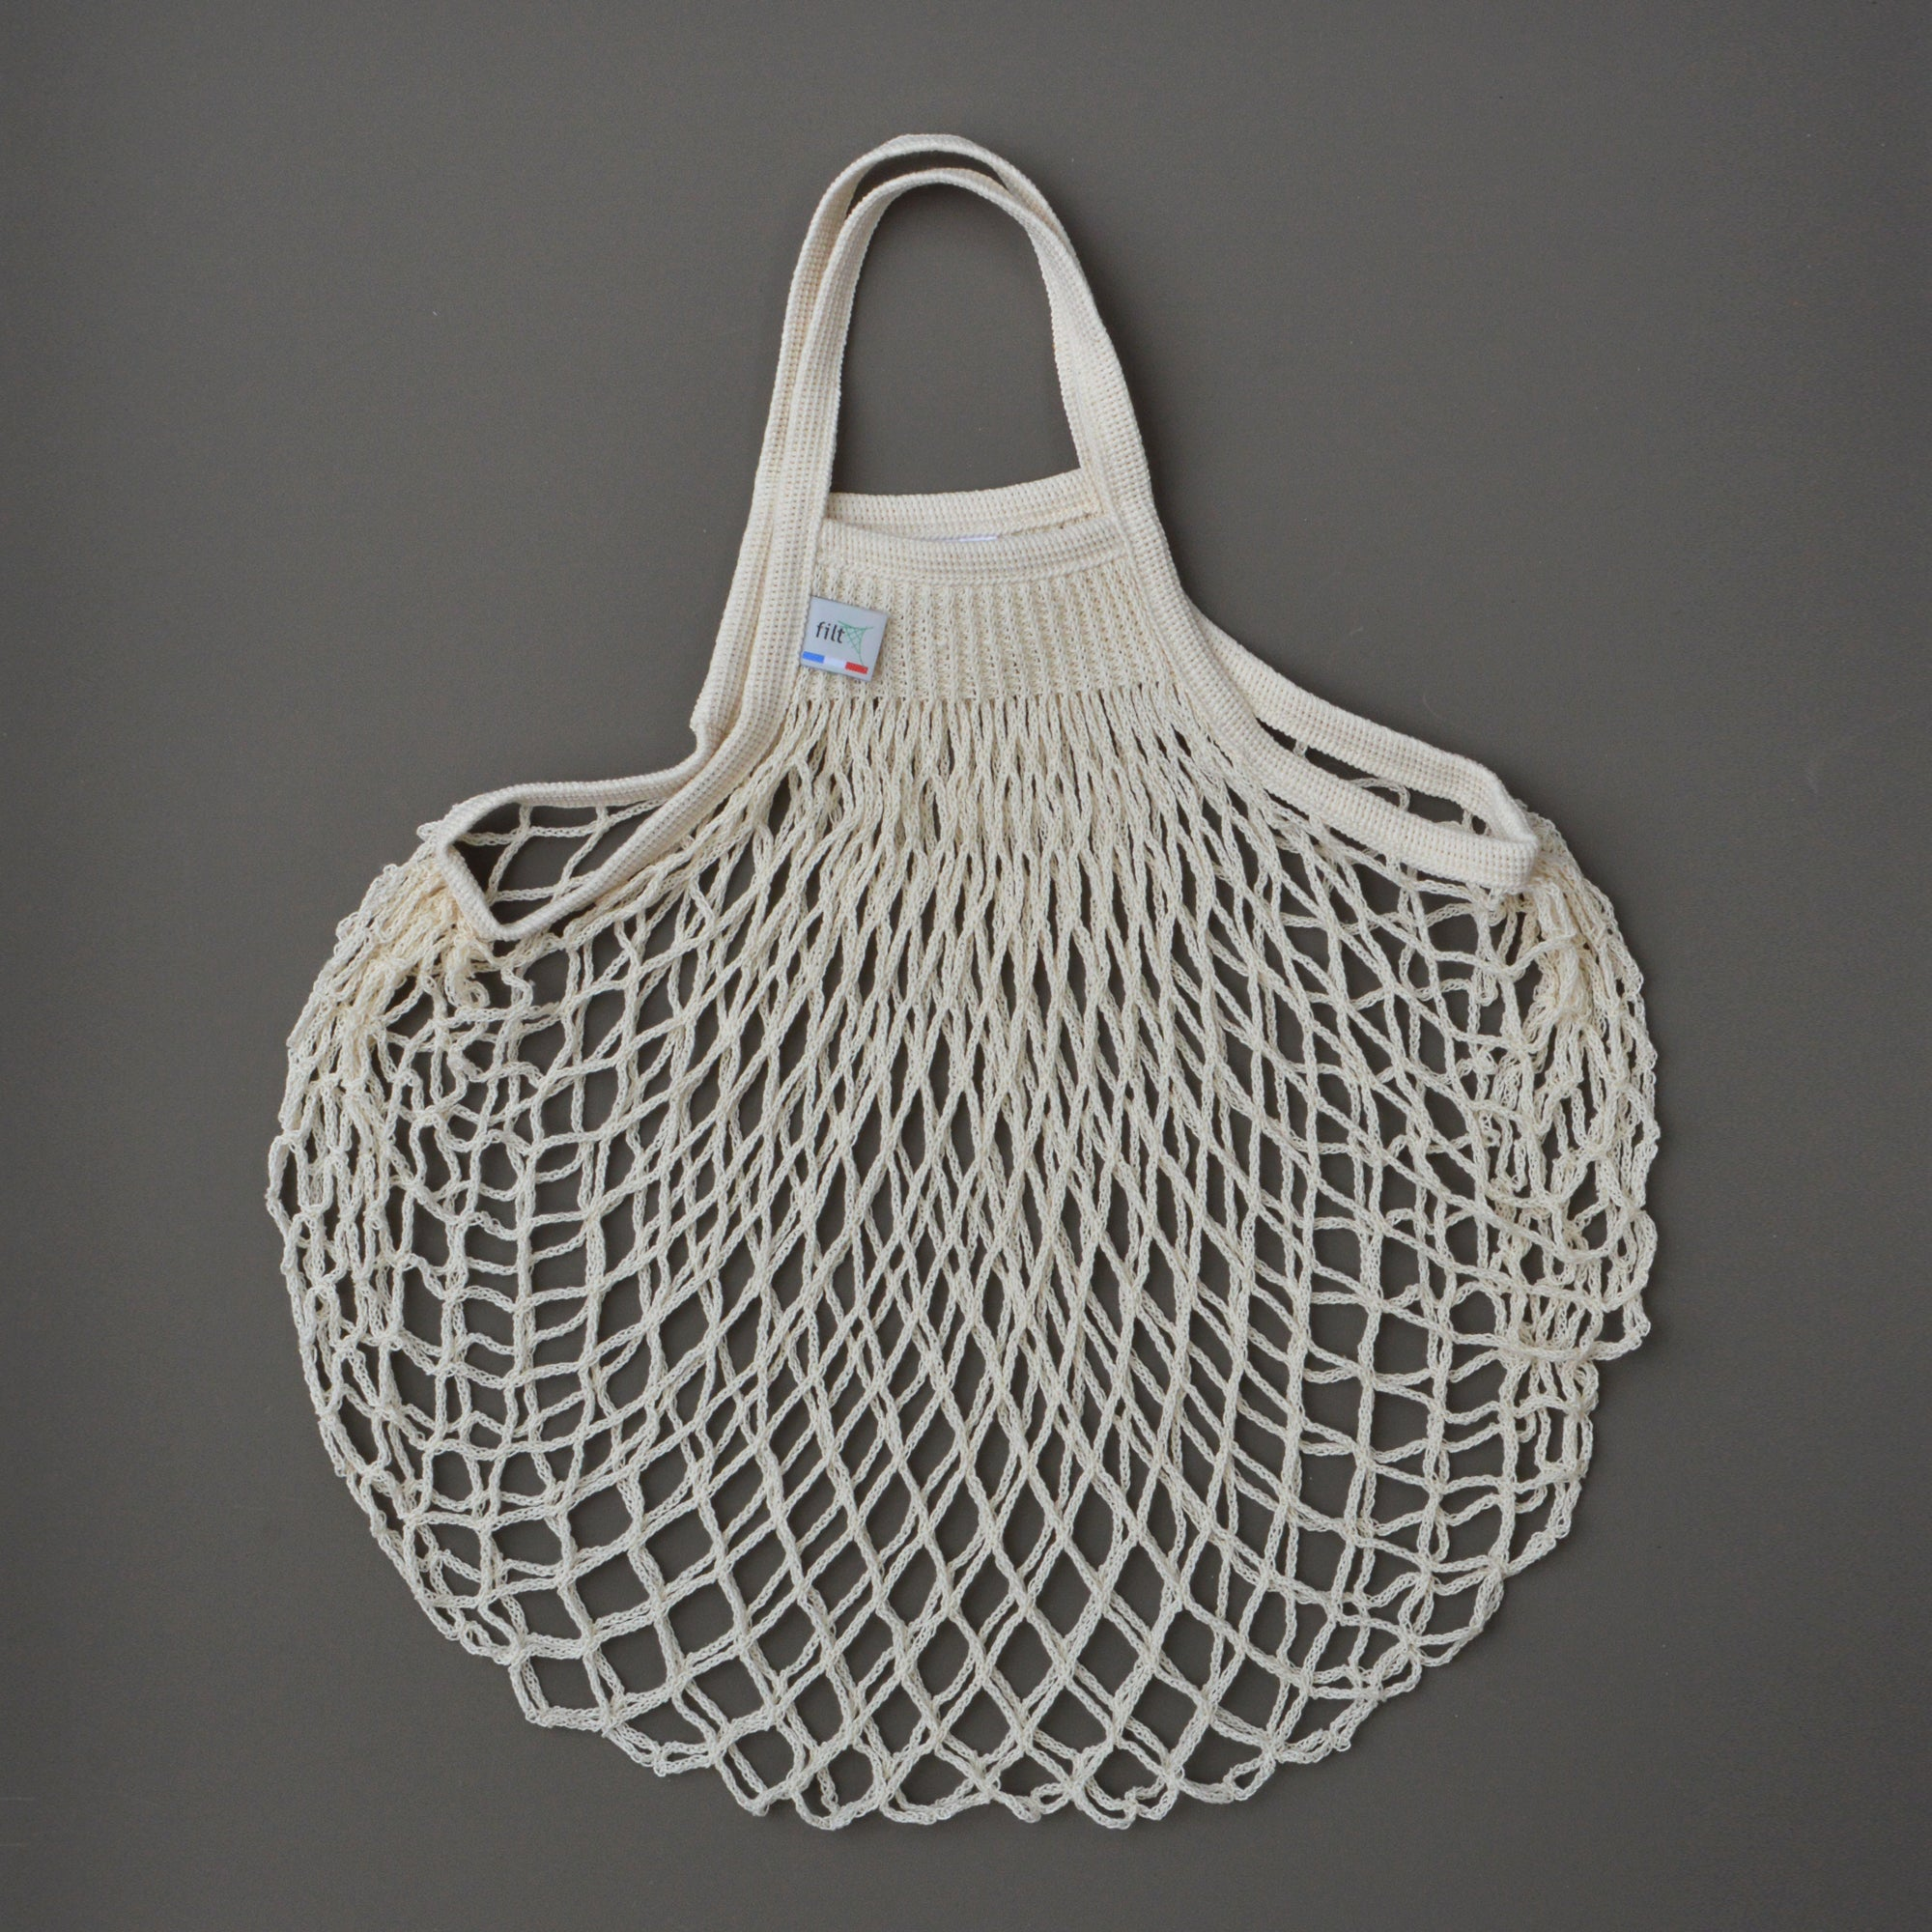 French String Bag in Ecru